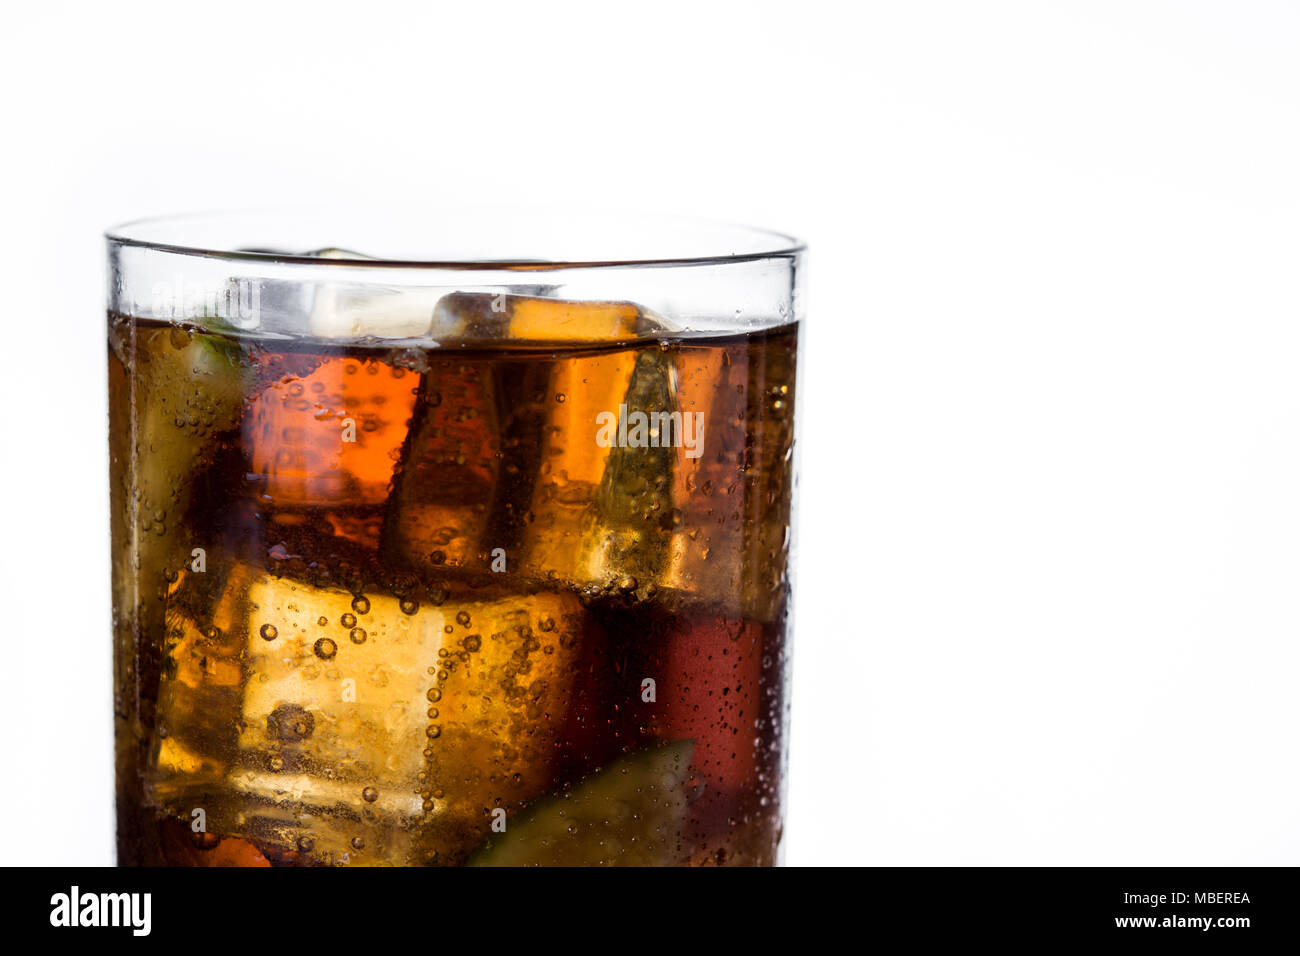 Cuba libre. Cocktail with rum, lime and ice isolated on white background. Copyspace - Stock Image